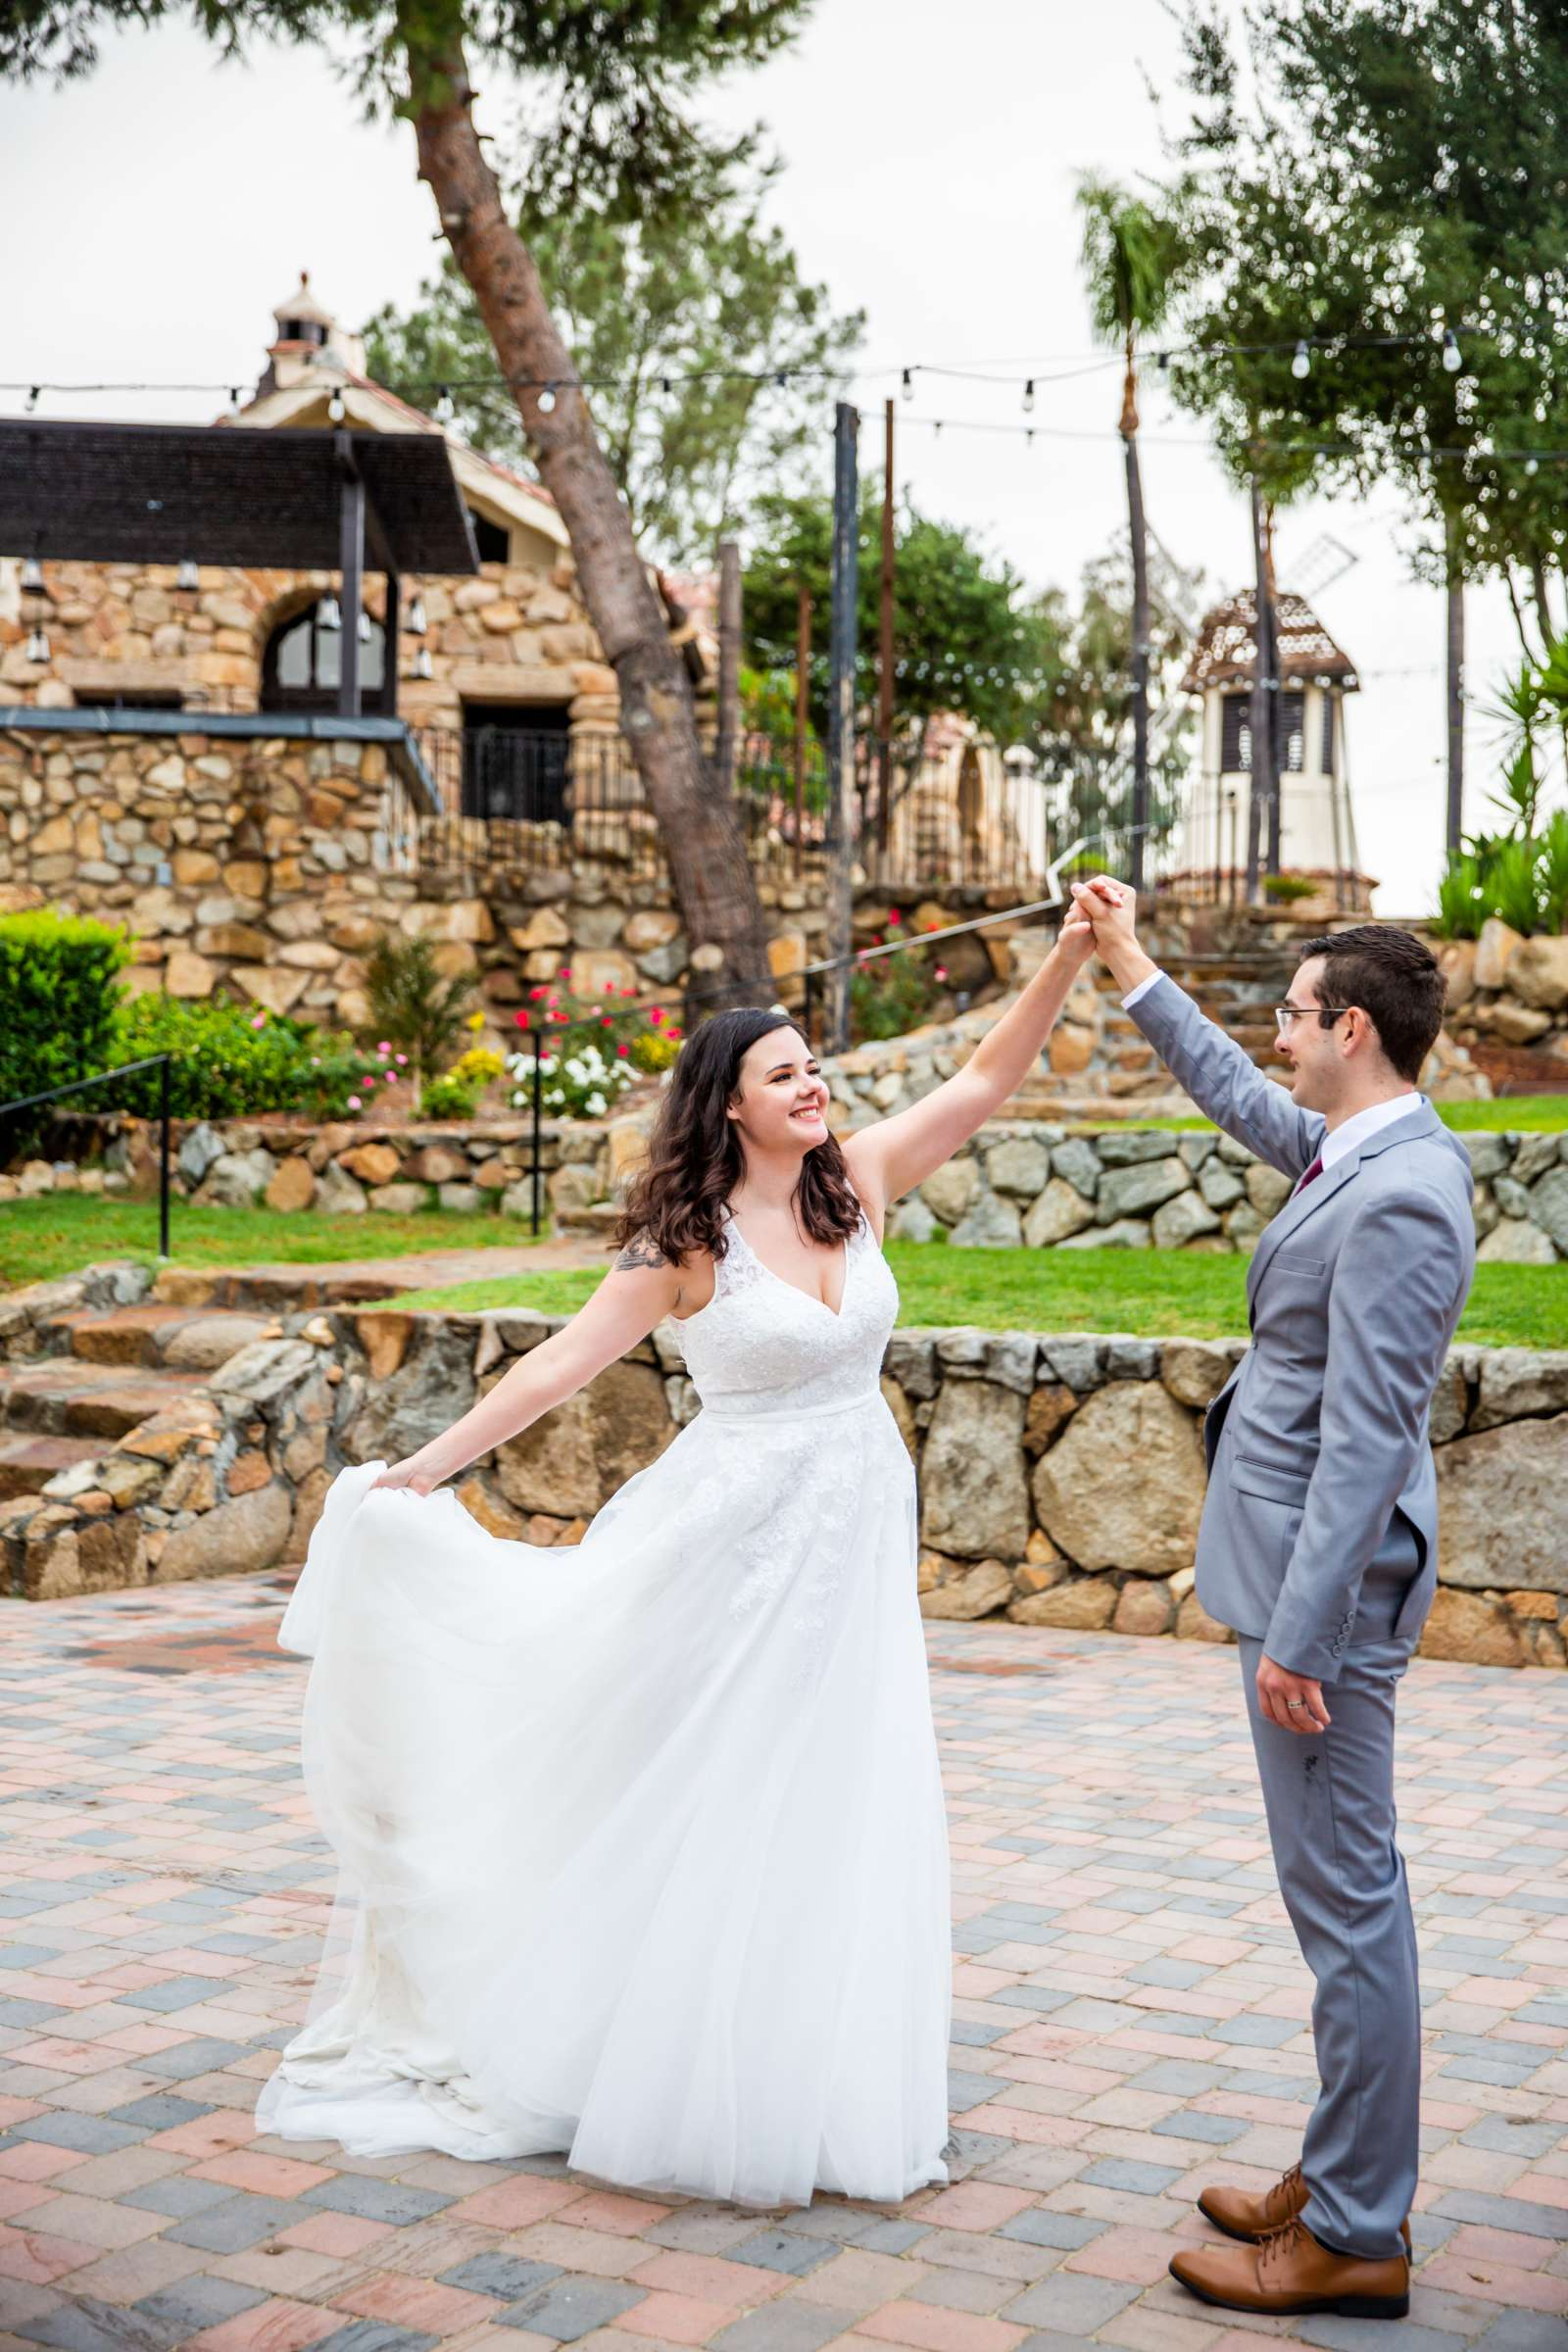 Mt Woodson Castle Wedding, Valerie and Ian Wedding Photo #4 by True Photography